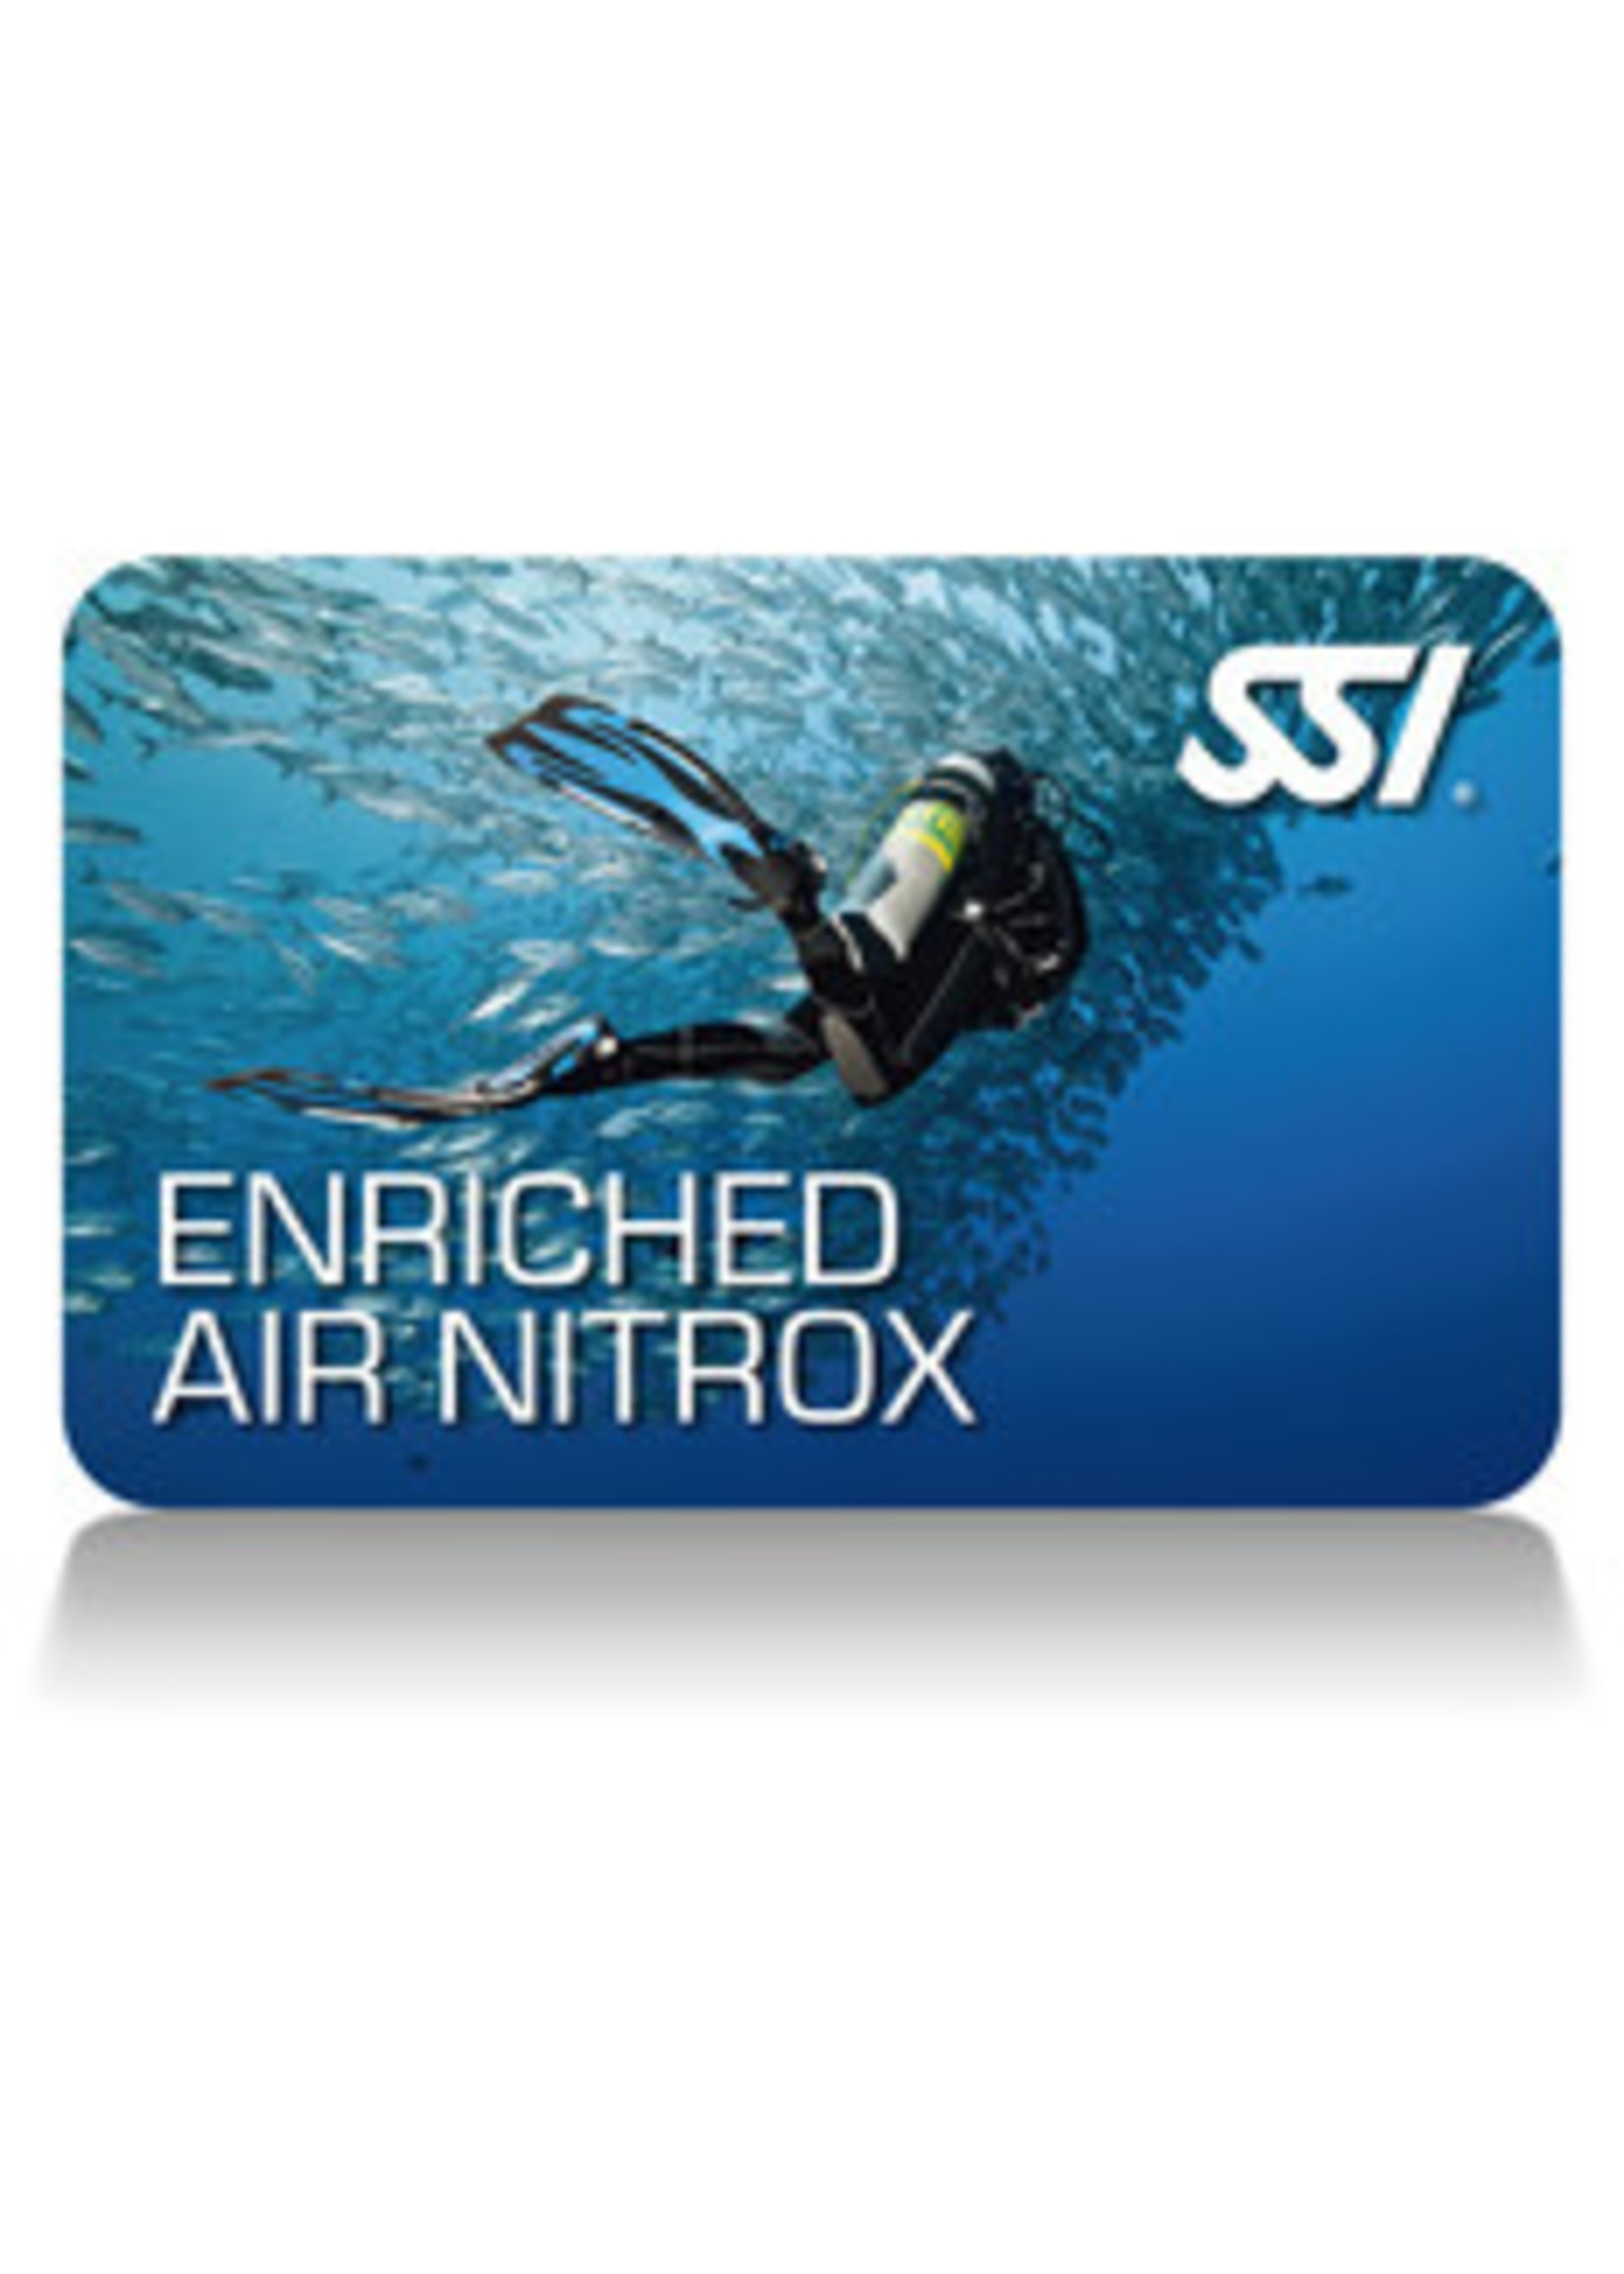 SSI Enriched Air Nitrox Specialty